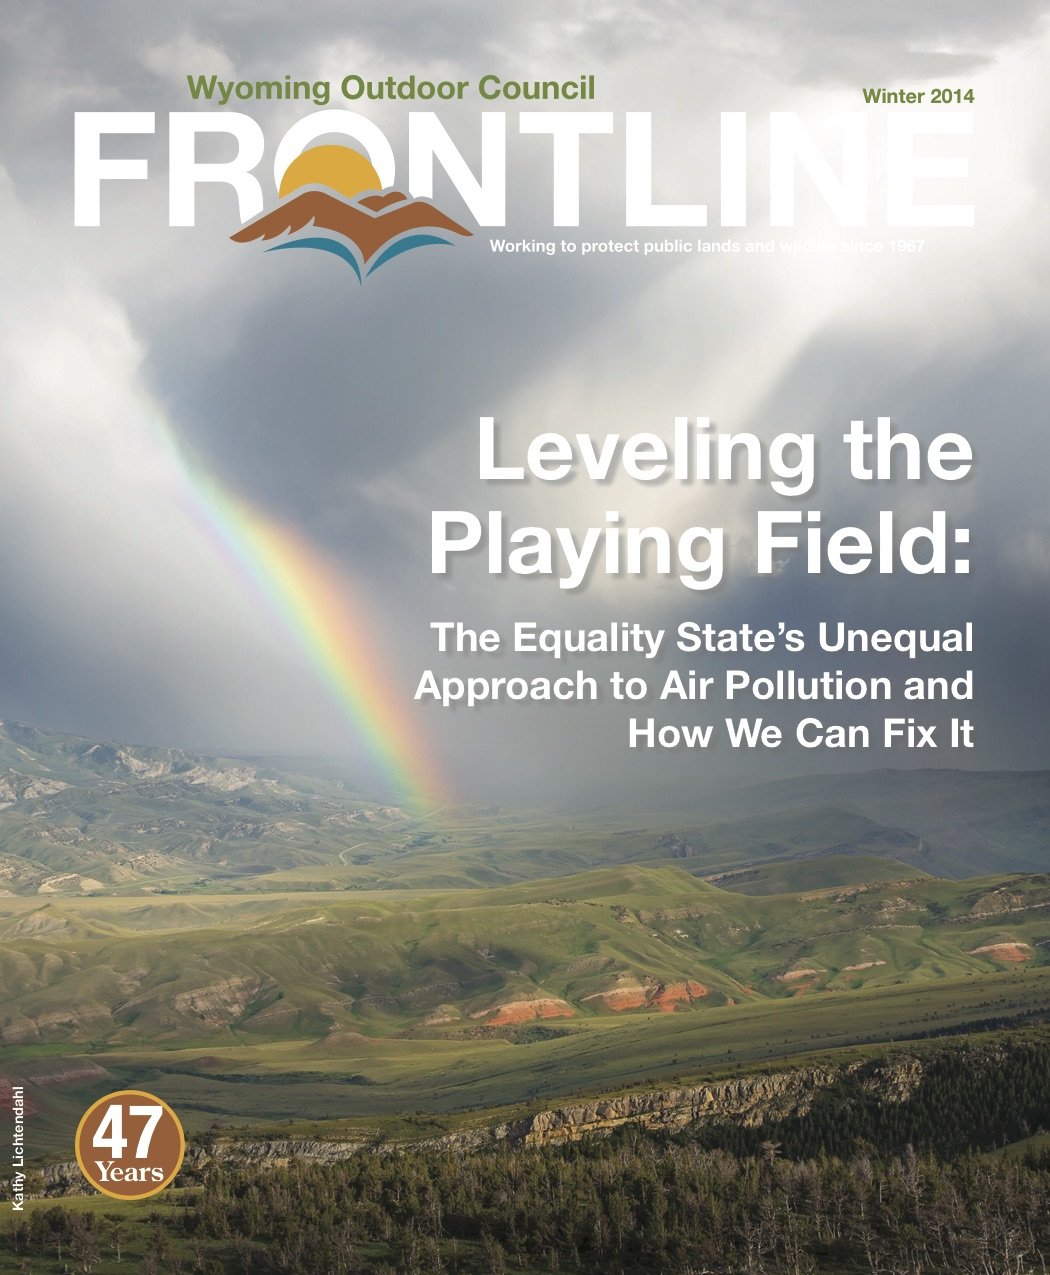 Leveling the Playing Field: The Equality State's Unequal Approach to Air Pollution and How We Can Fix It